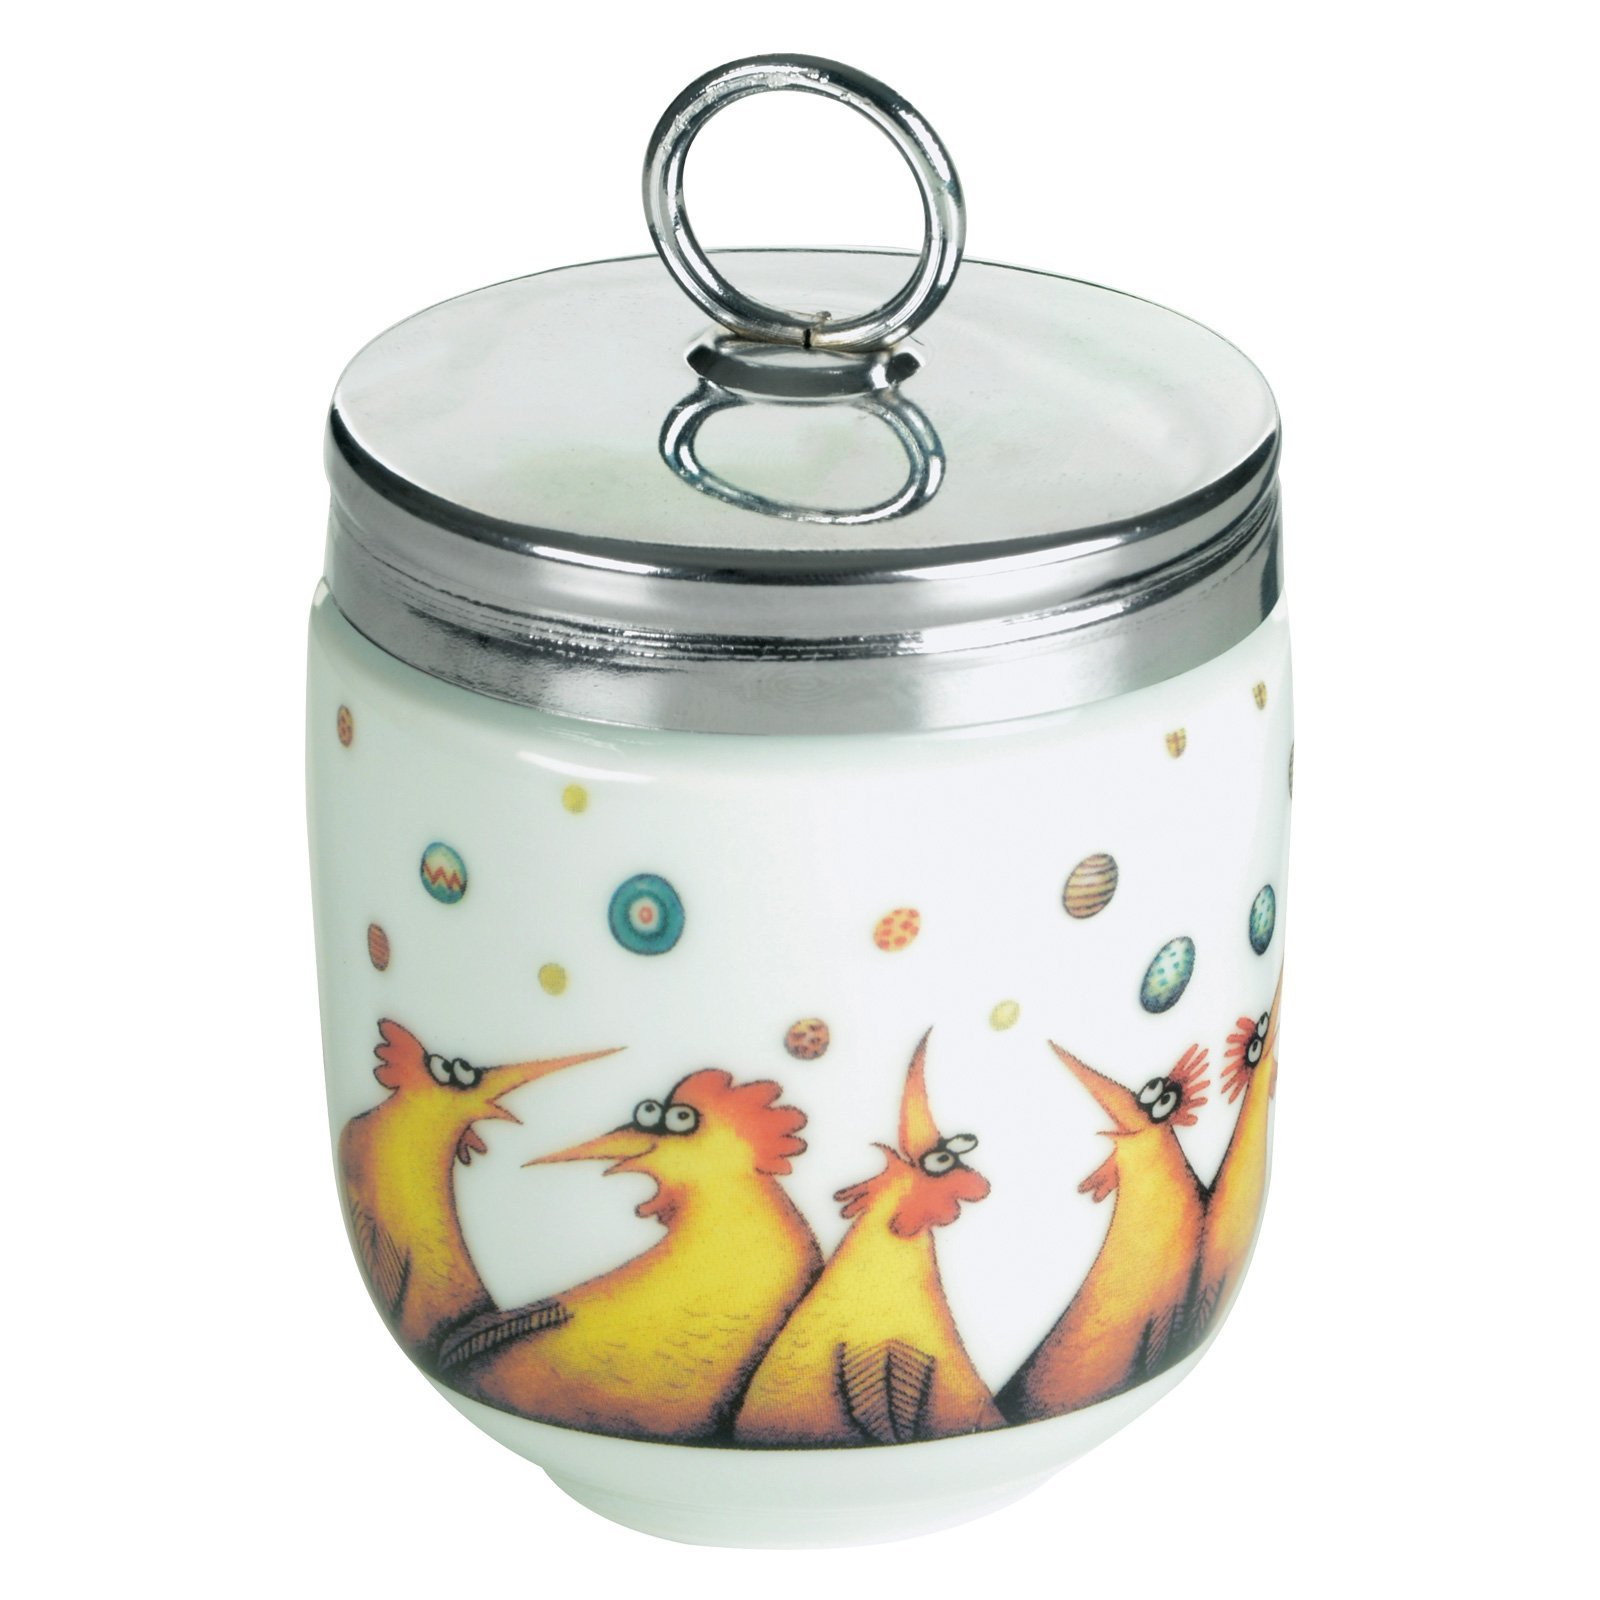 DRH Raining Eggss Egg Coddler For Easy Cook Meals and Ways To Cook Eggs In Porcelain Dish